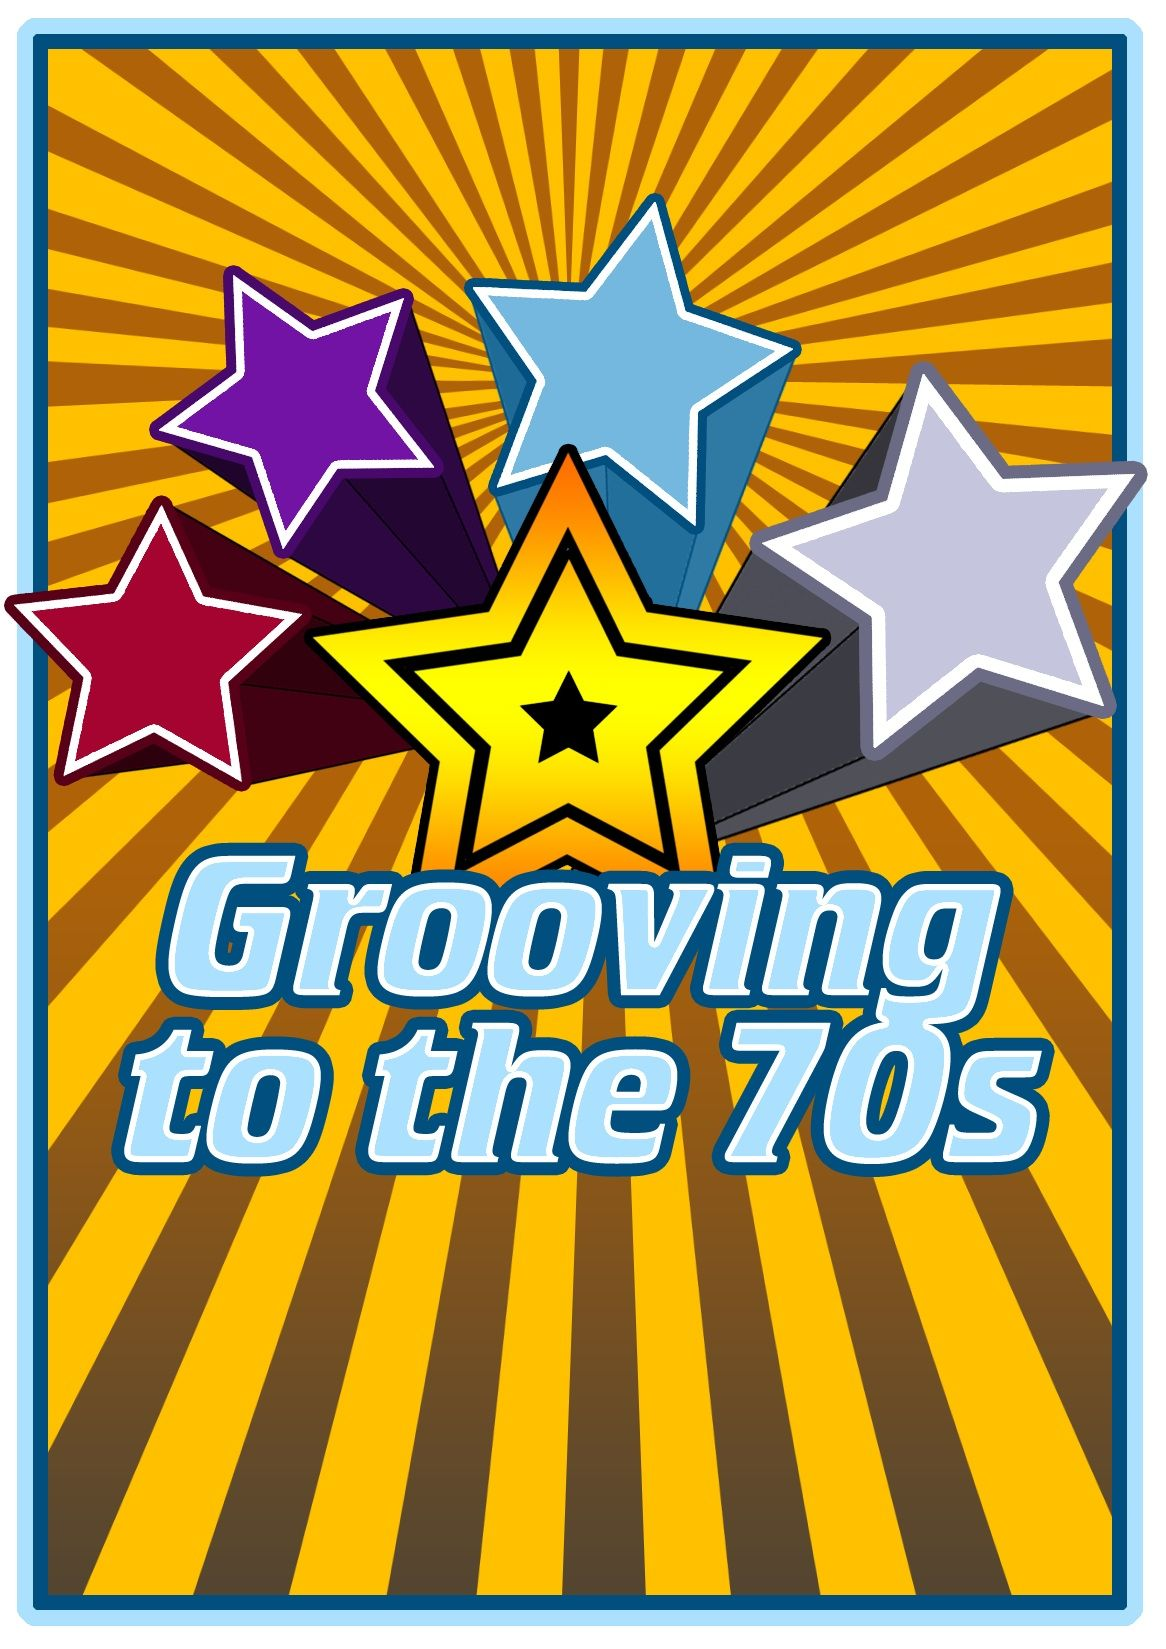 70s poster design - 70 S Style Pictures Of The 70s Posters Design Life Hippy Image Search Soundtrack